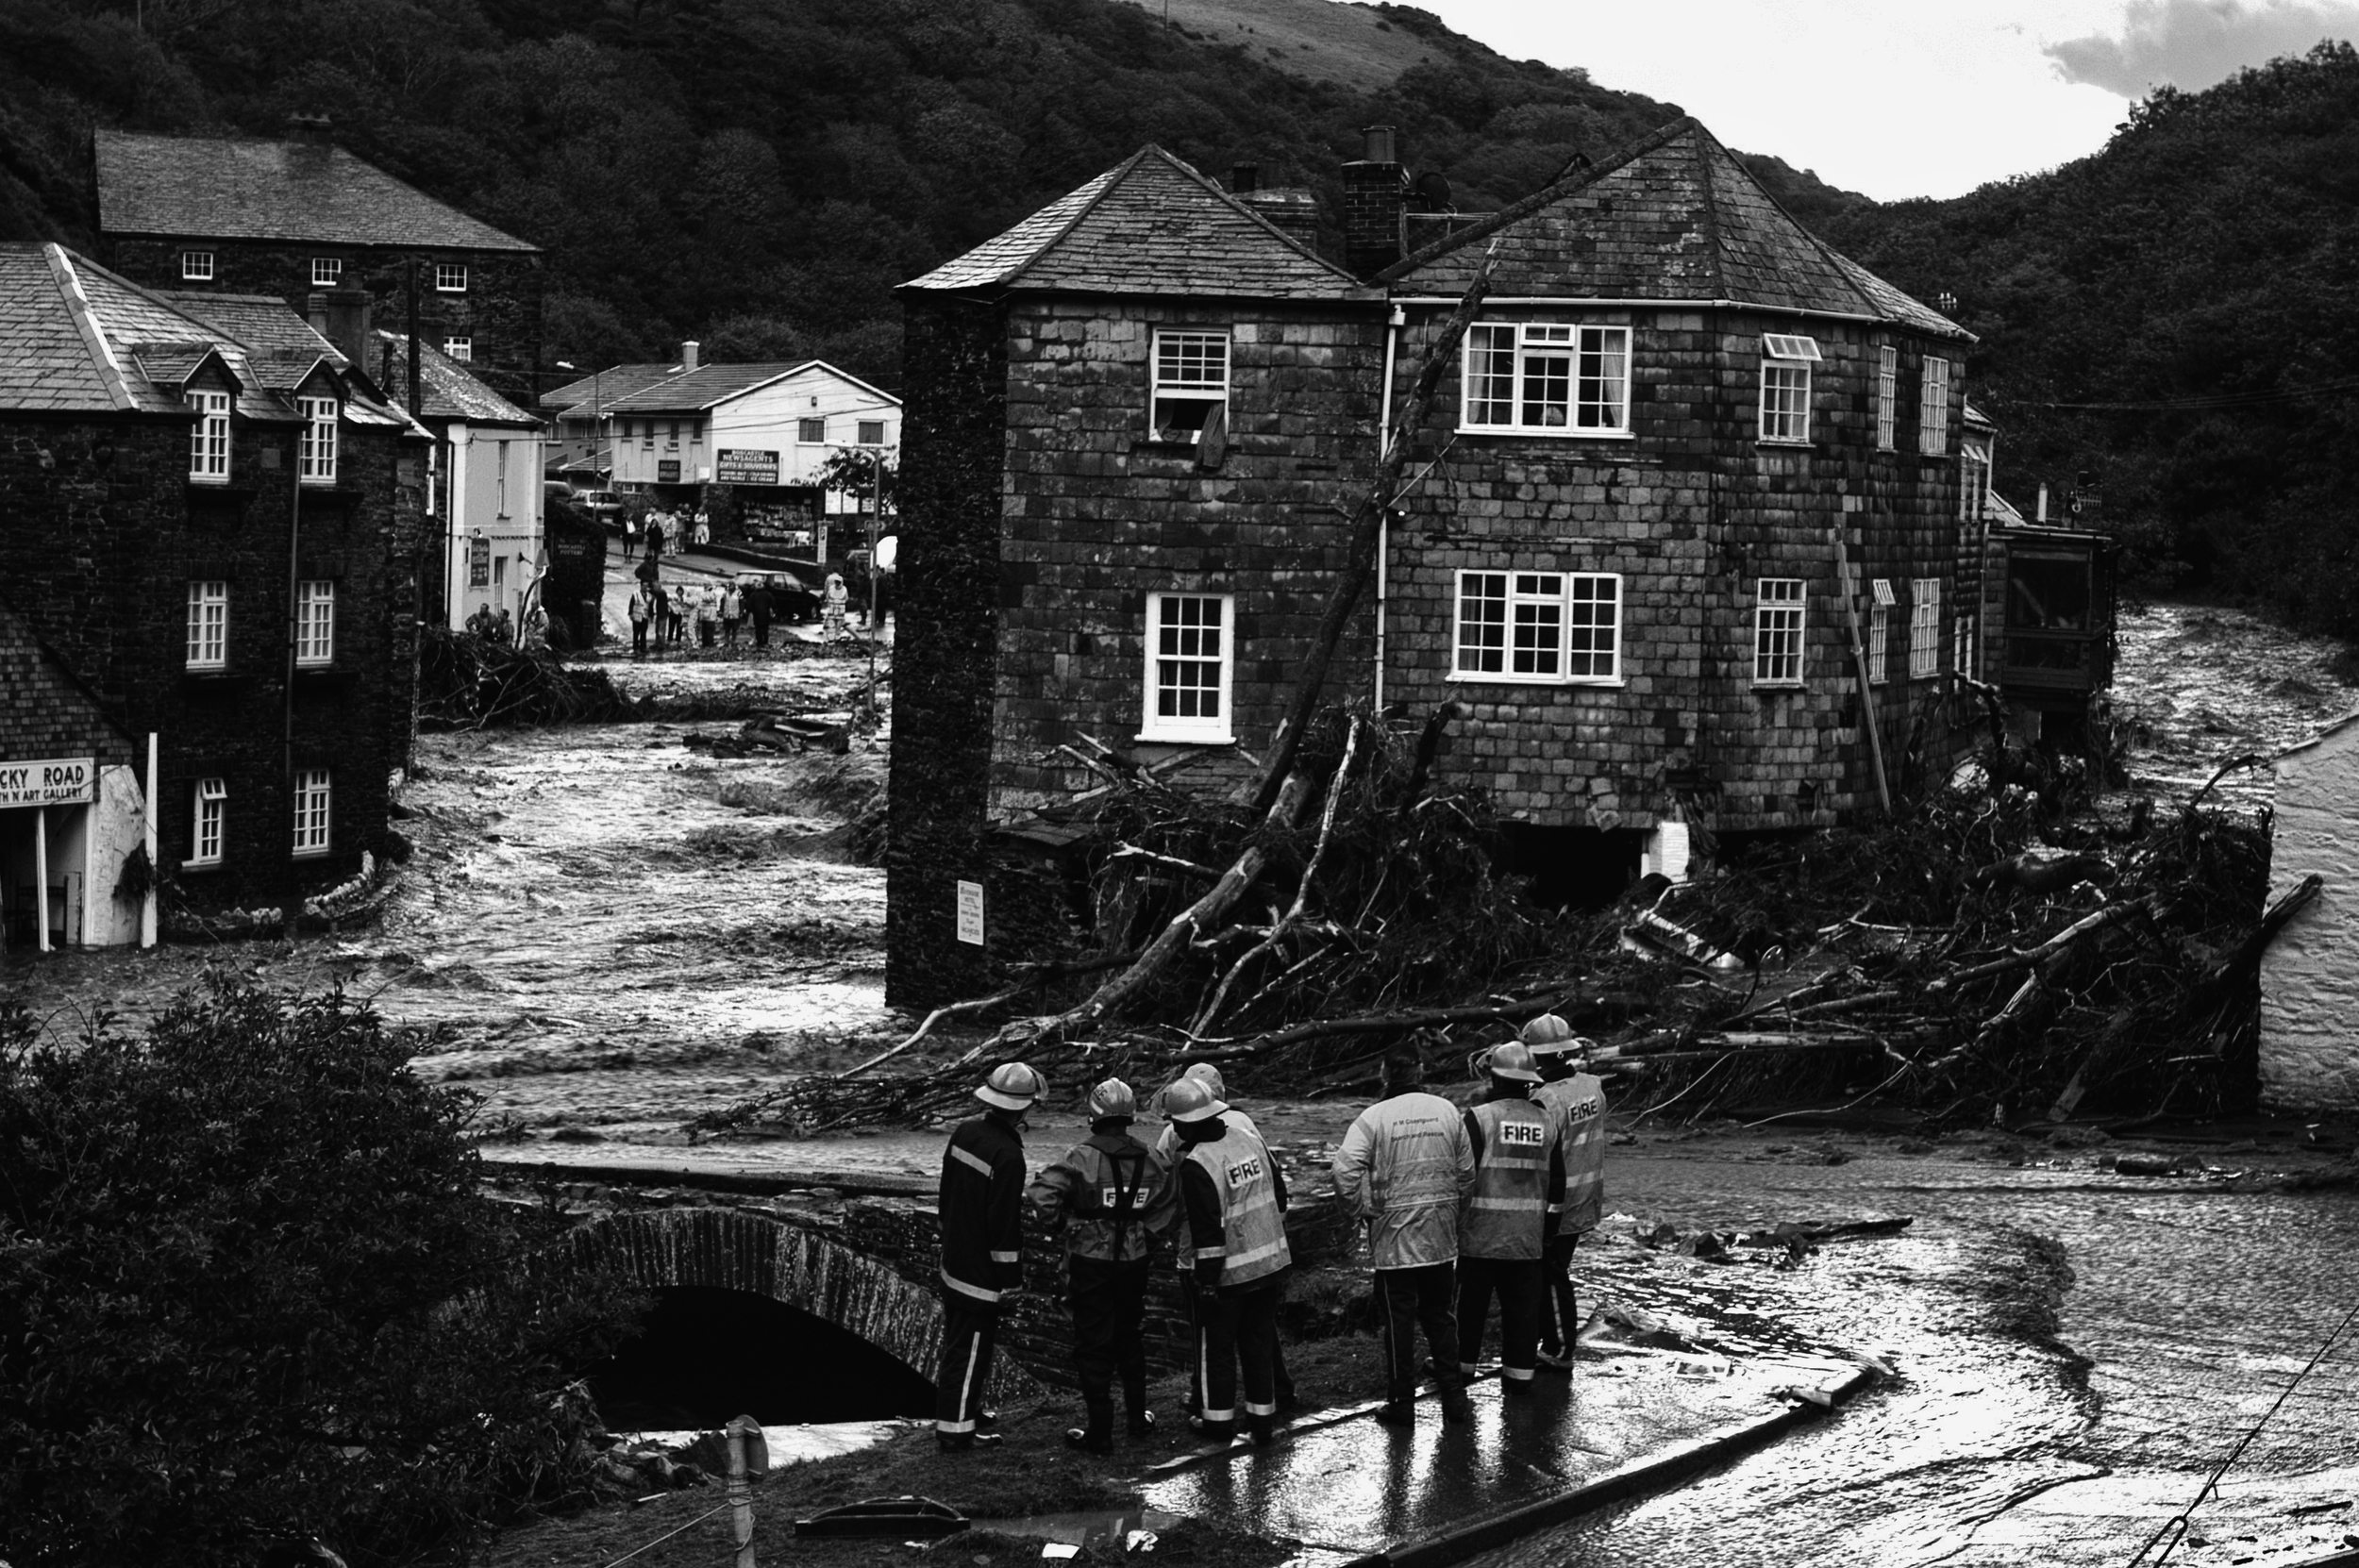 Fire brigade search and rescue fast rope teams looking for flood victims in Boscastle, Cornwall, August 16, 2004. (Photo/Mark Pearson)